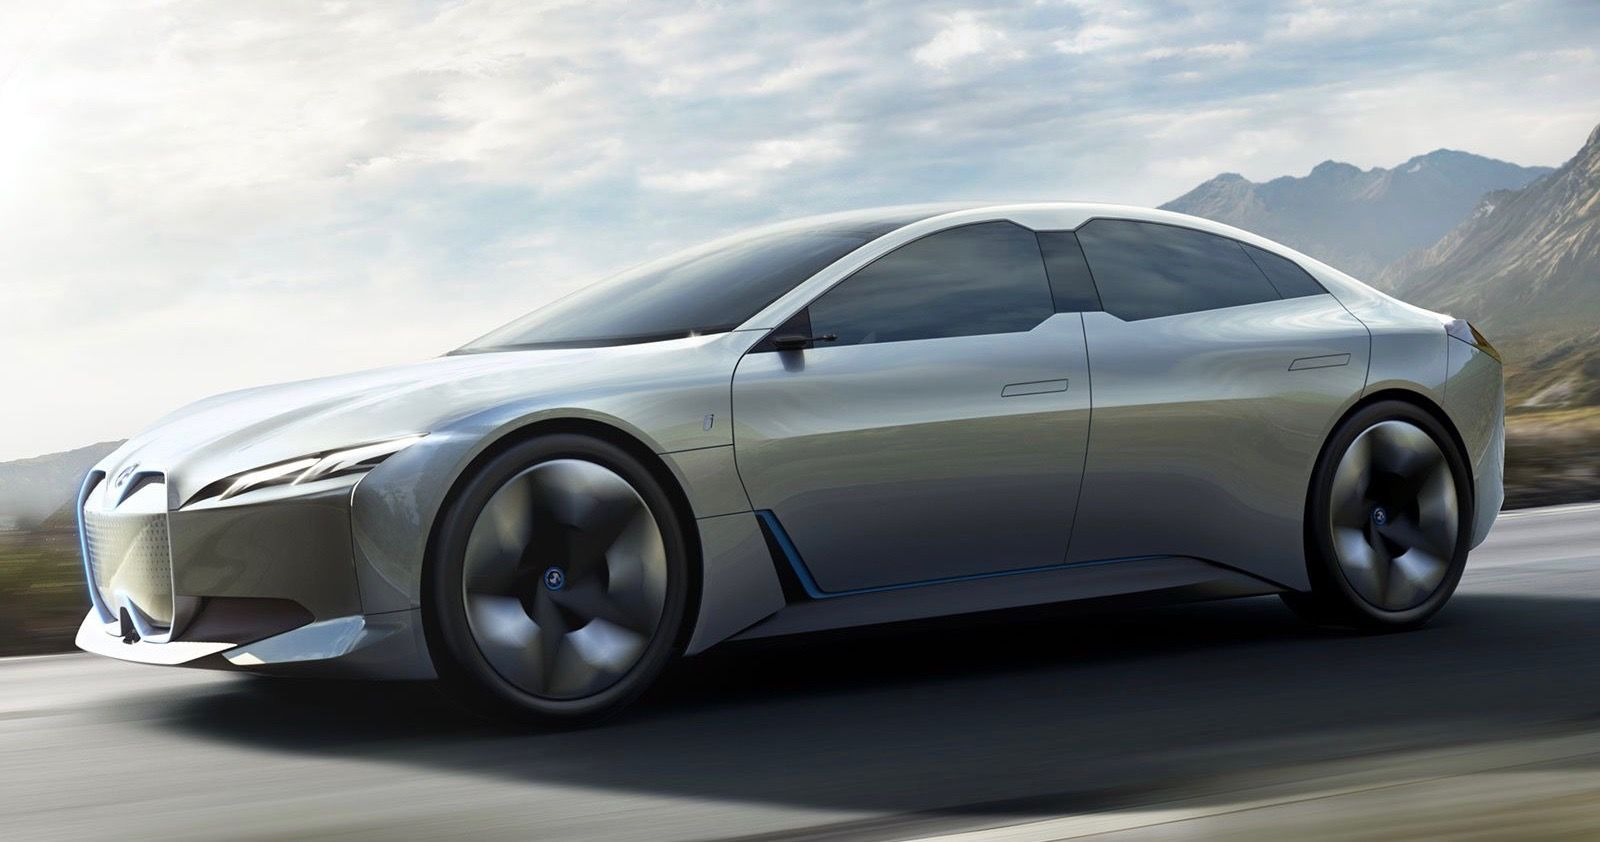 new images of the bmw i4 electric vehicle hit the internet